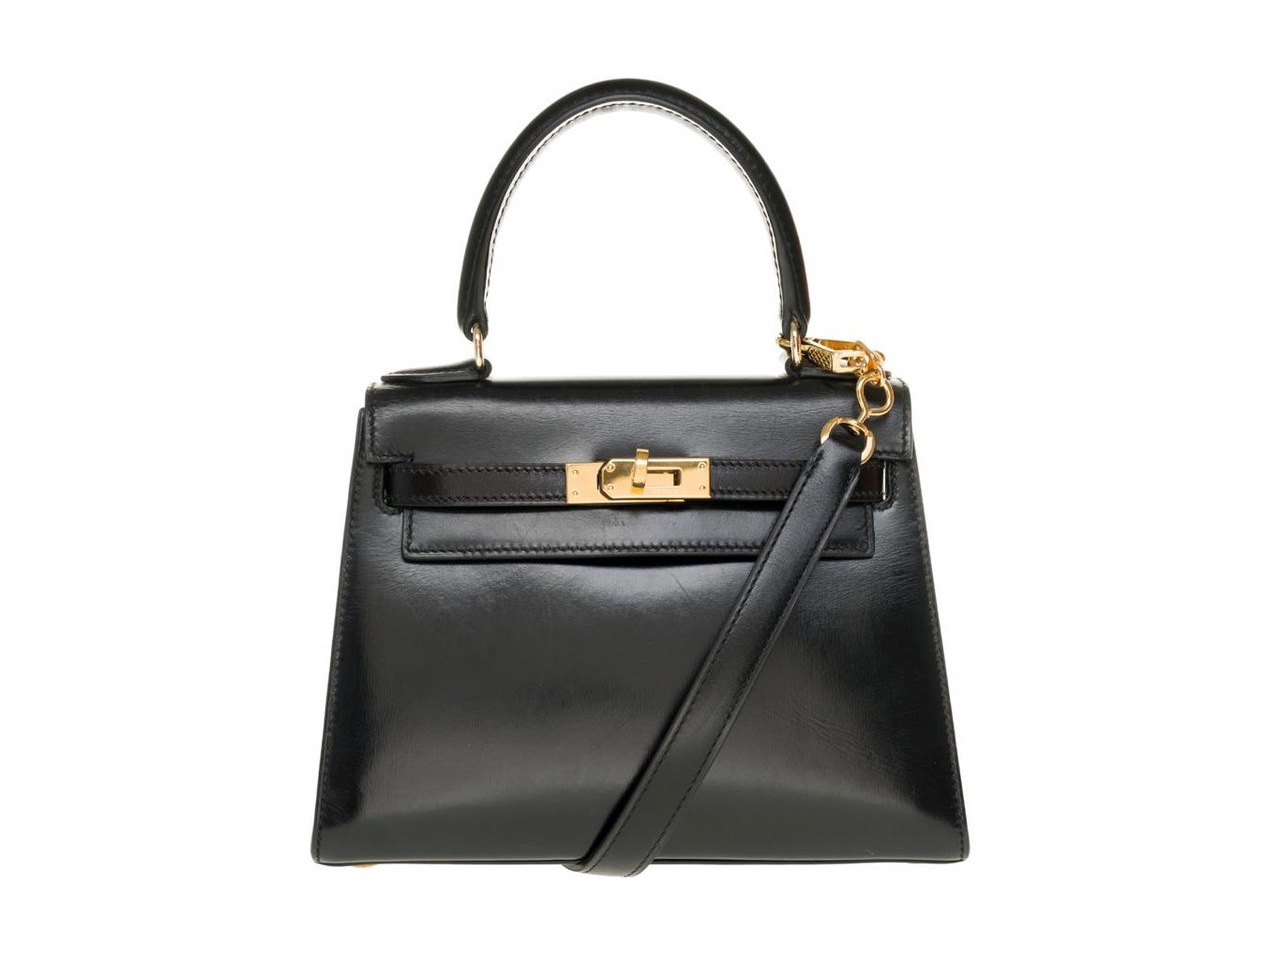 Hermès-Mini-Kelly-20-Black-0-1